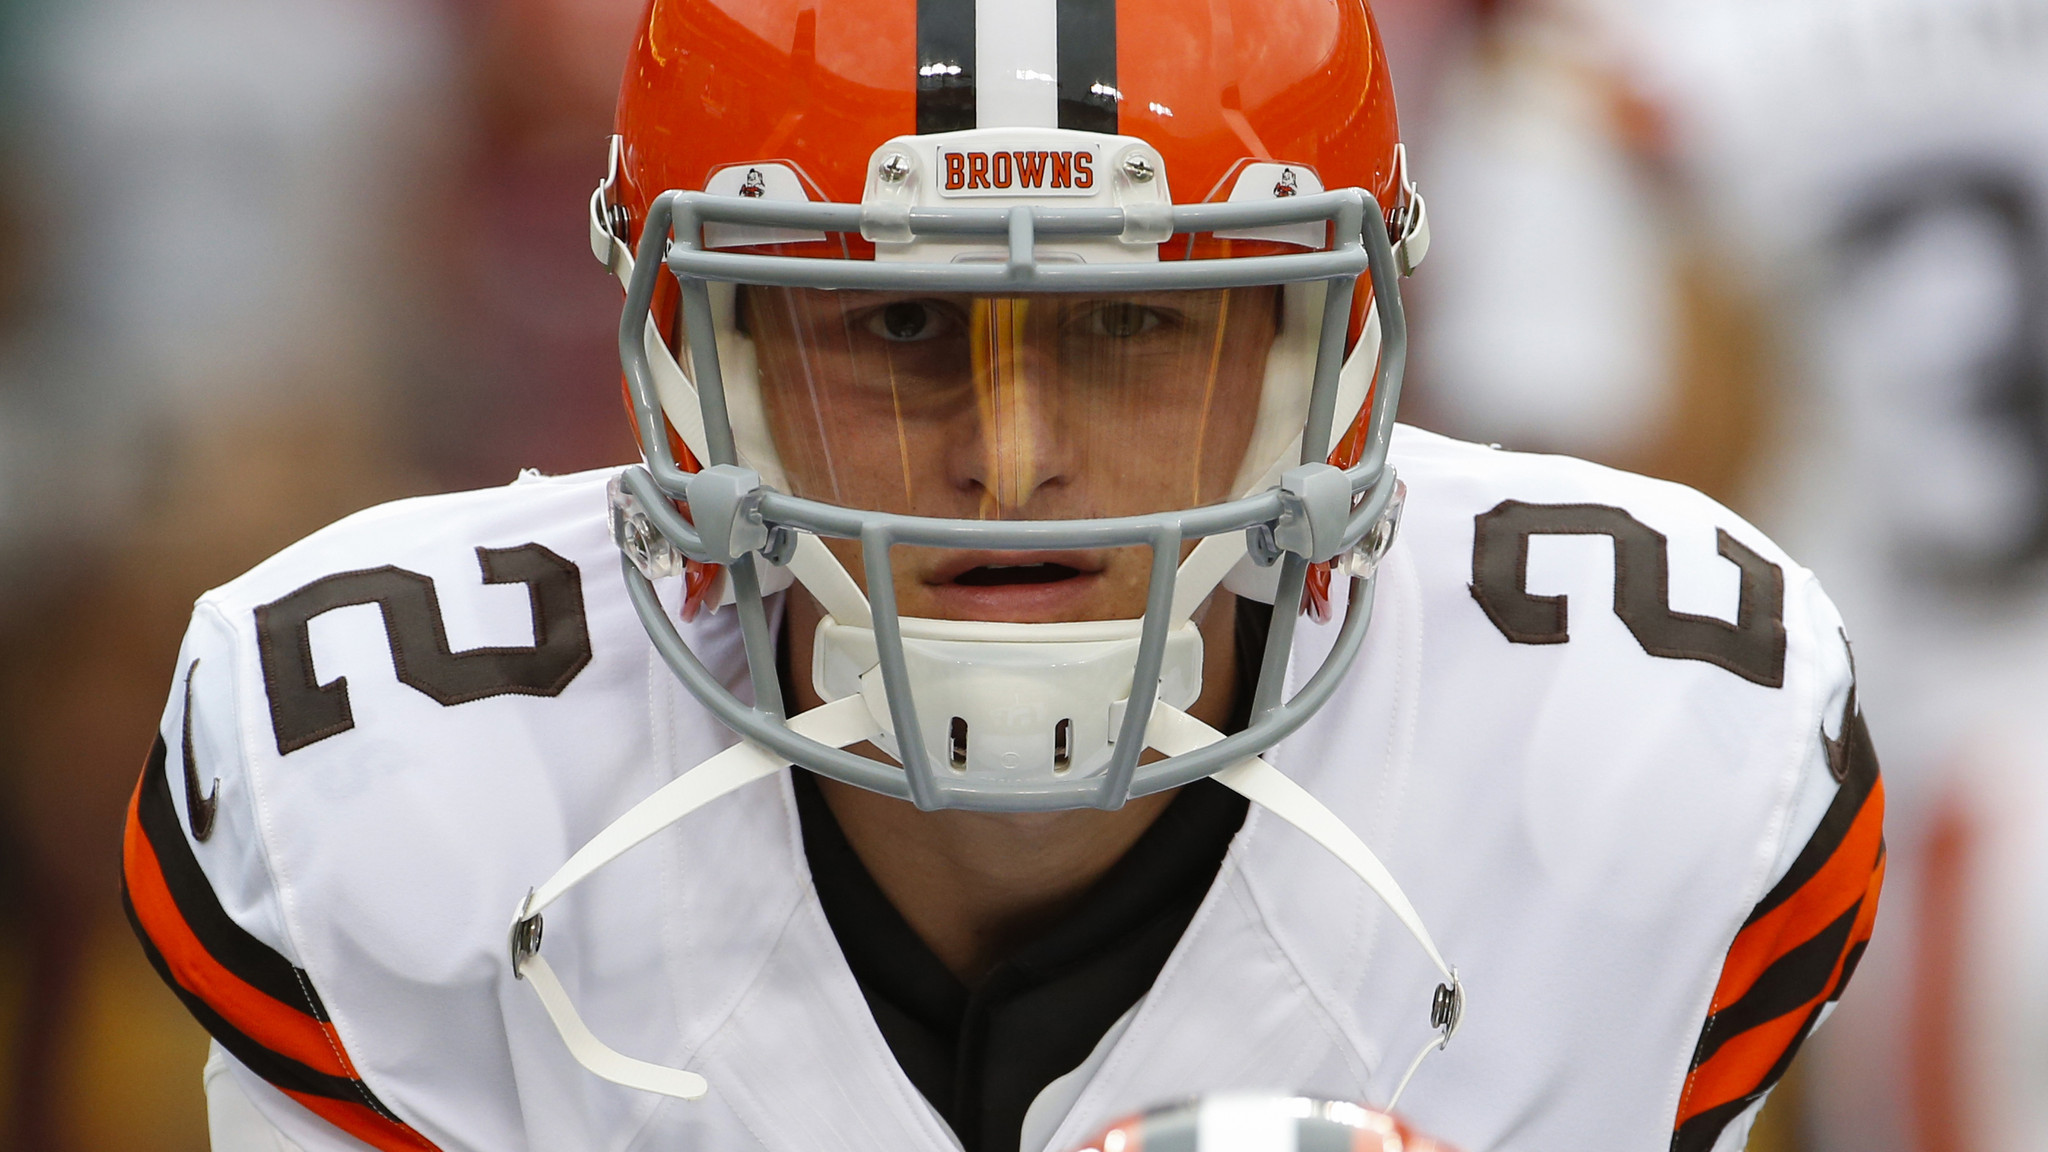 Steelers fans advertise special foam fingers for Johnny Manziel's arrival